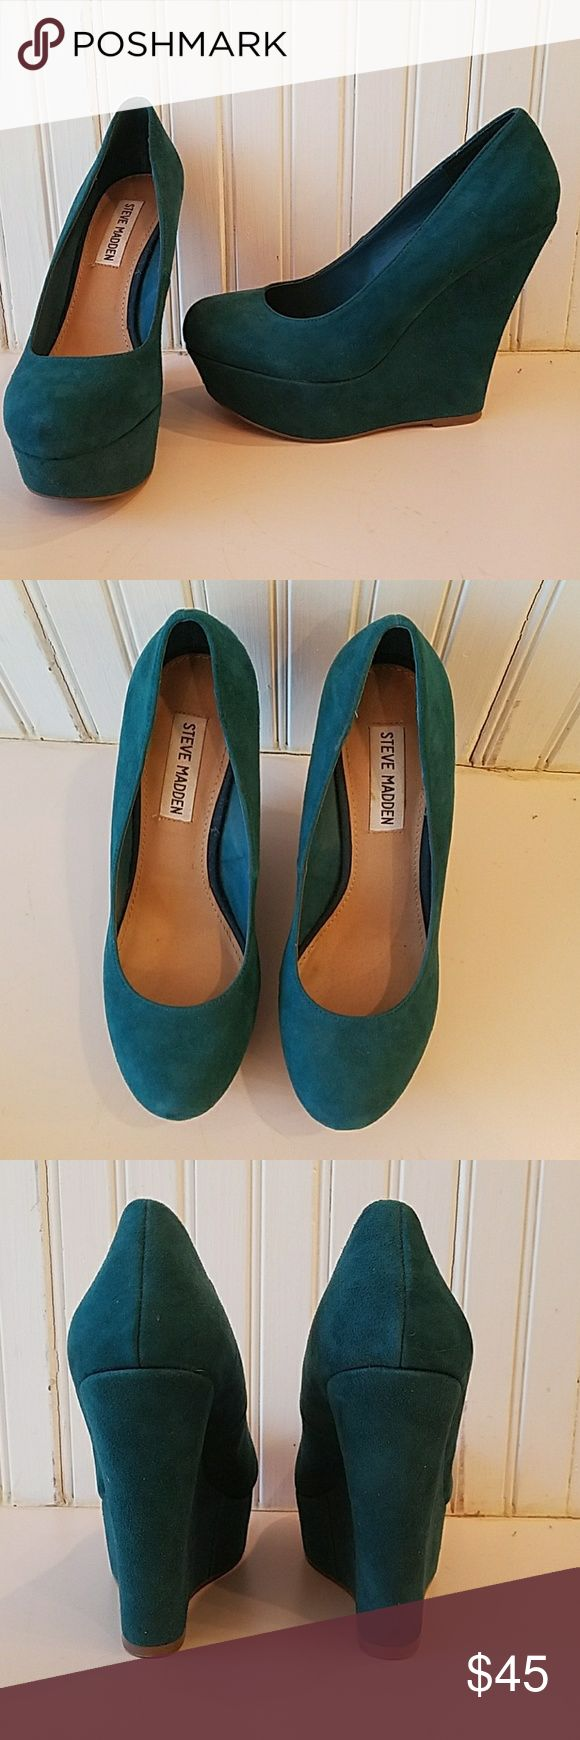 Steve Madden teal suede platform pumps These beautiful Steve Madden Pammyy pumps were only worn once. Teal suede, 5in heel with 1.5in platform. Genuine leather upper with man-made sole. Perfect with skinny jeans or dresses! Steve Madden Shoes Wedges